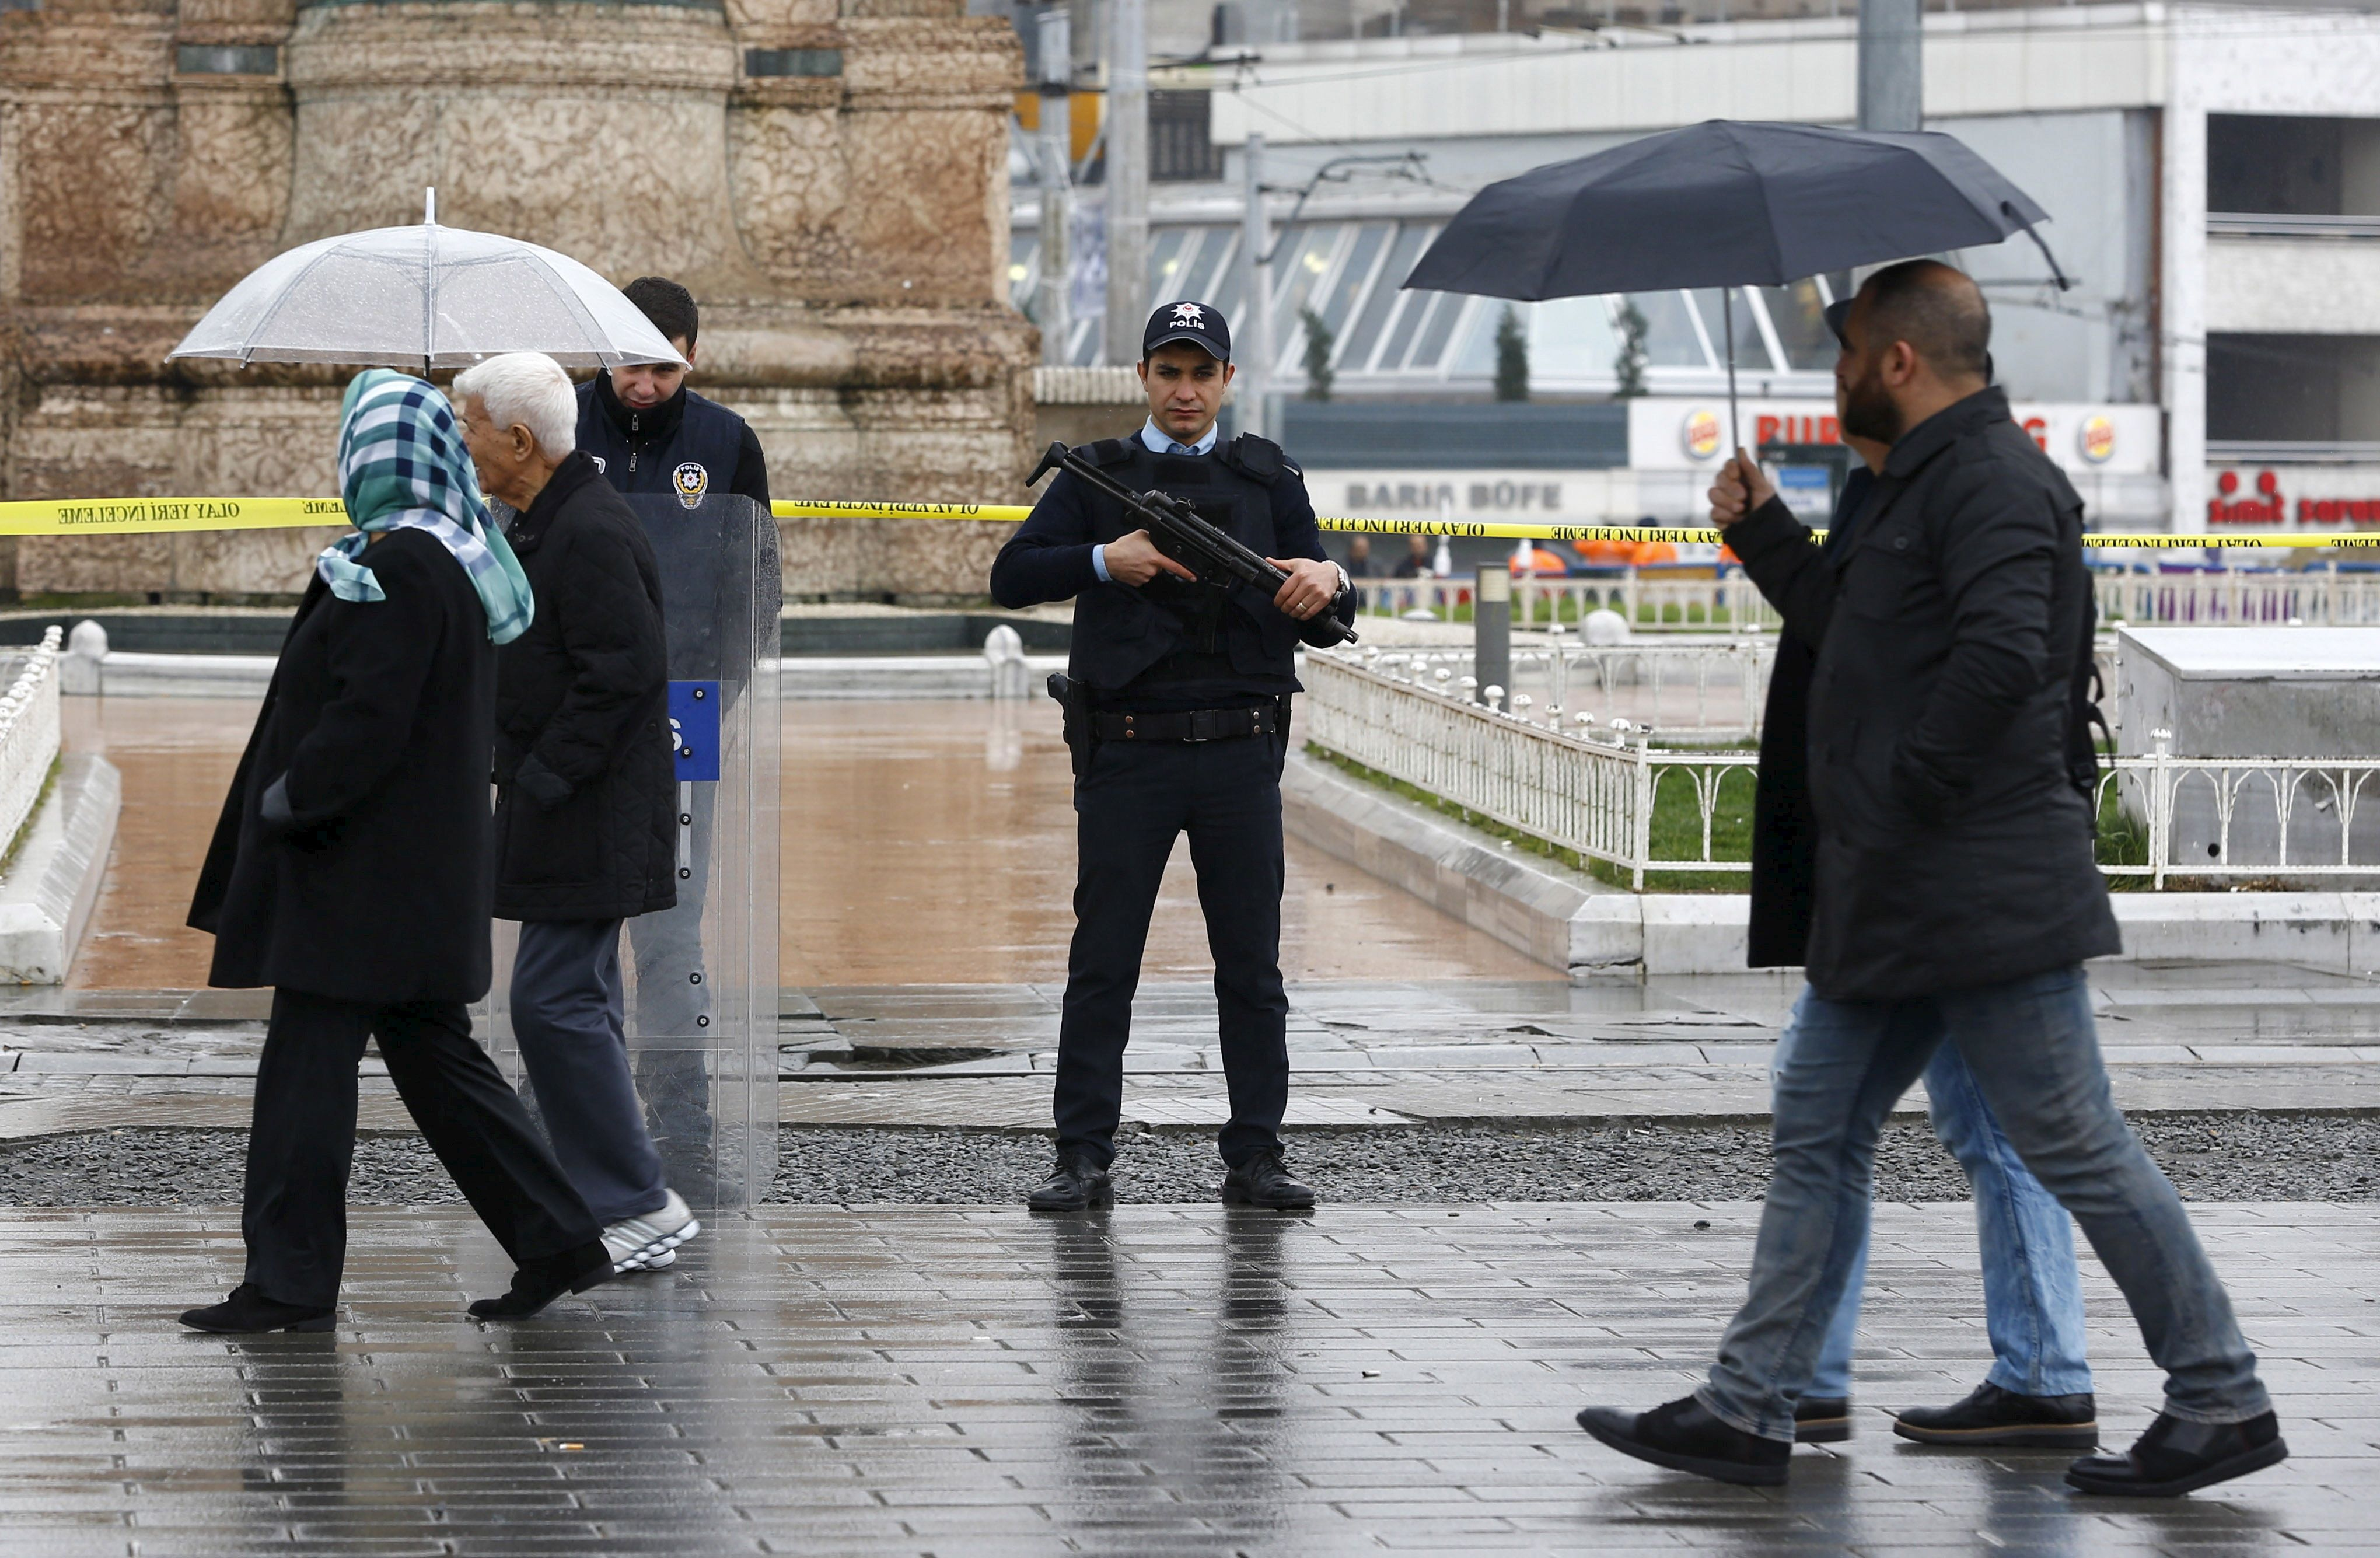 Police officers stand guard at Taksim square after a suicide bombing on a major shopping and tourist district in central Istanbul, Turkey March 19, 2016. REUTERS/Murad Sezer